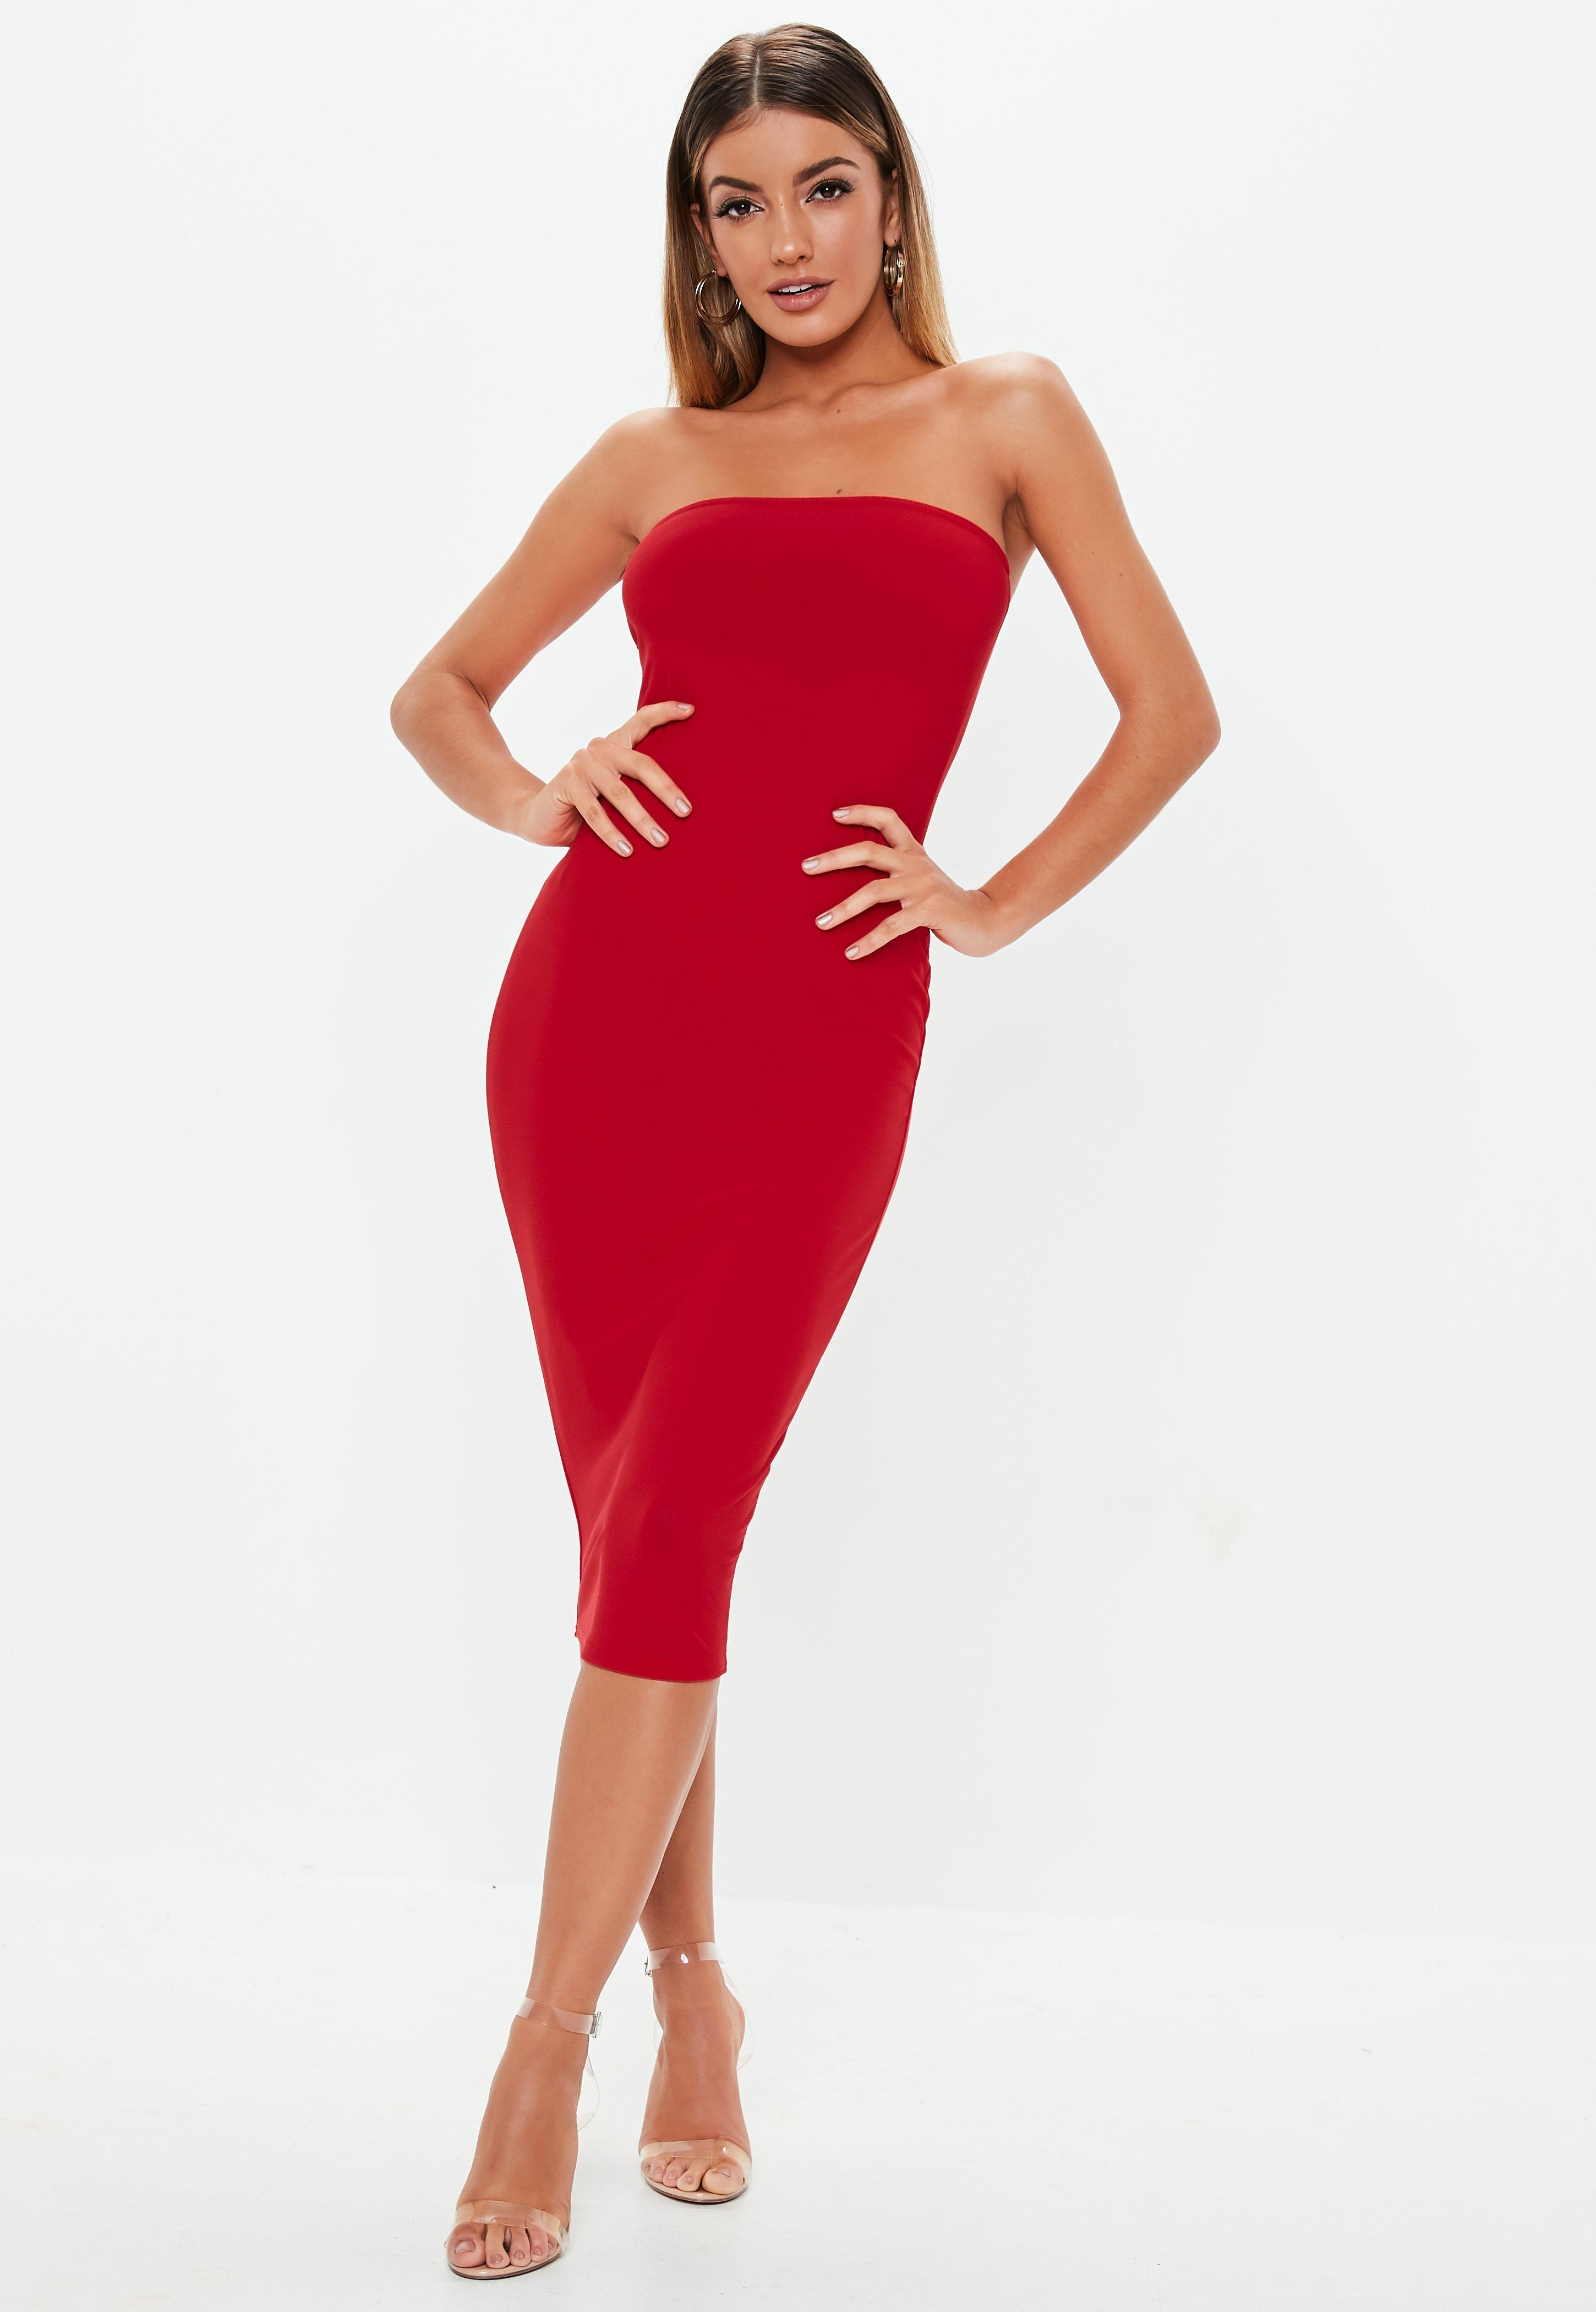 4b9a1822c2a3 Red Strapless Dresses | Women's Red Strapless Dresses Online - Missguided